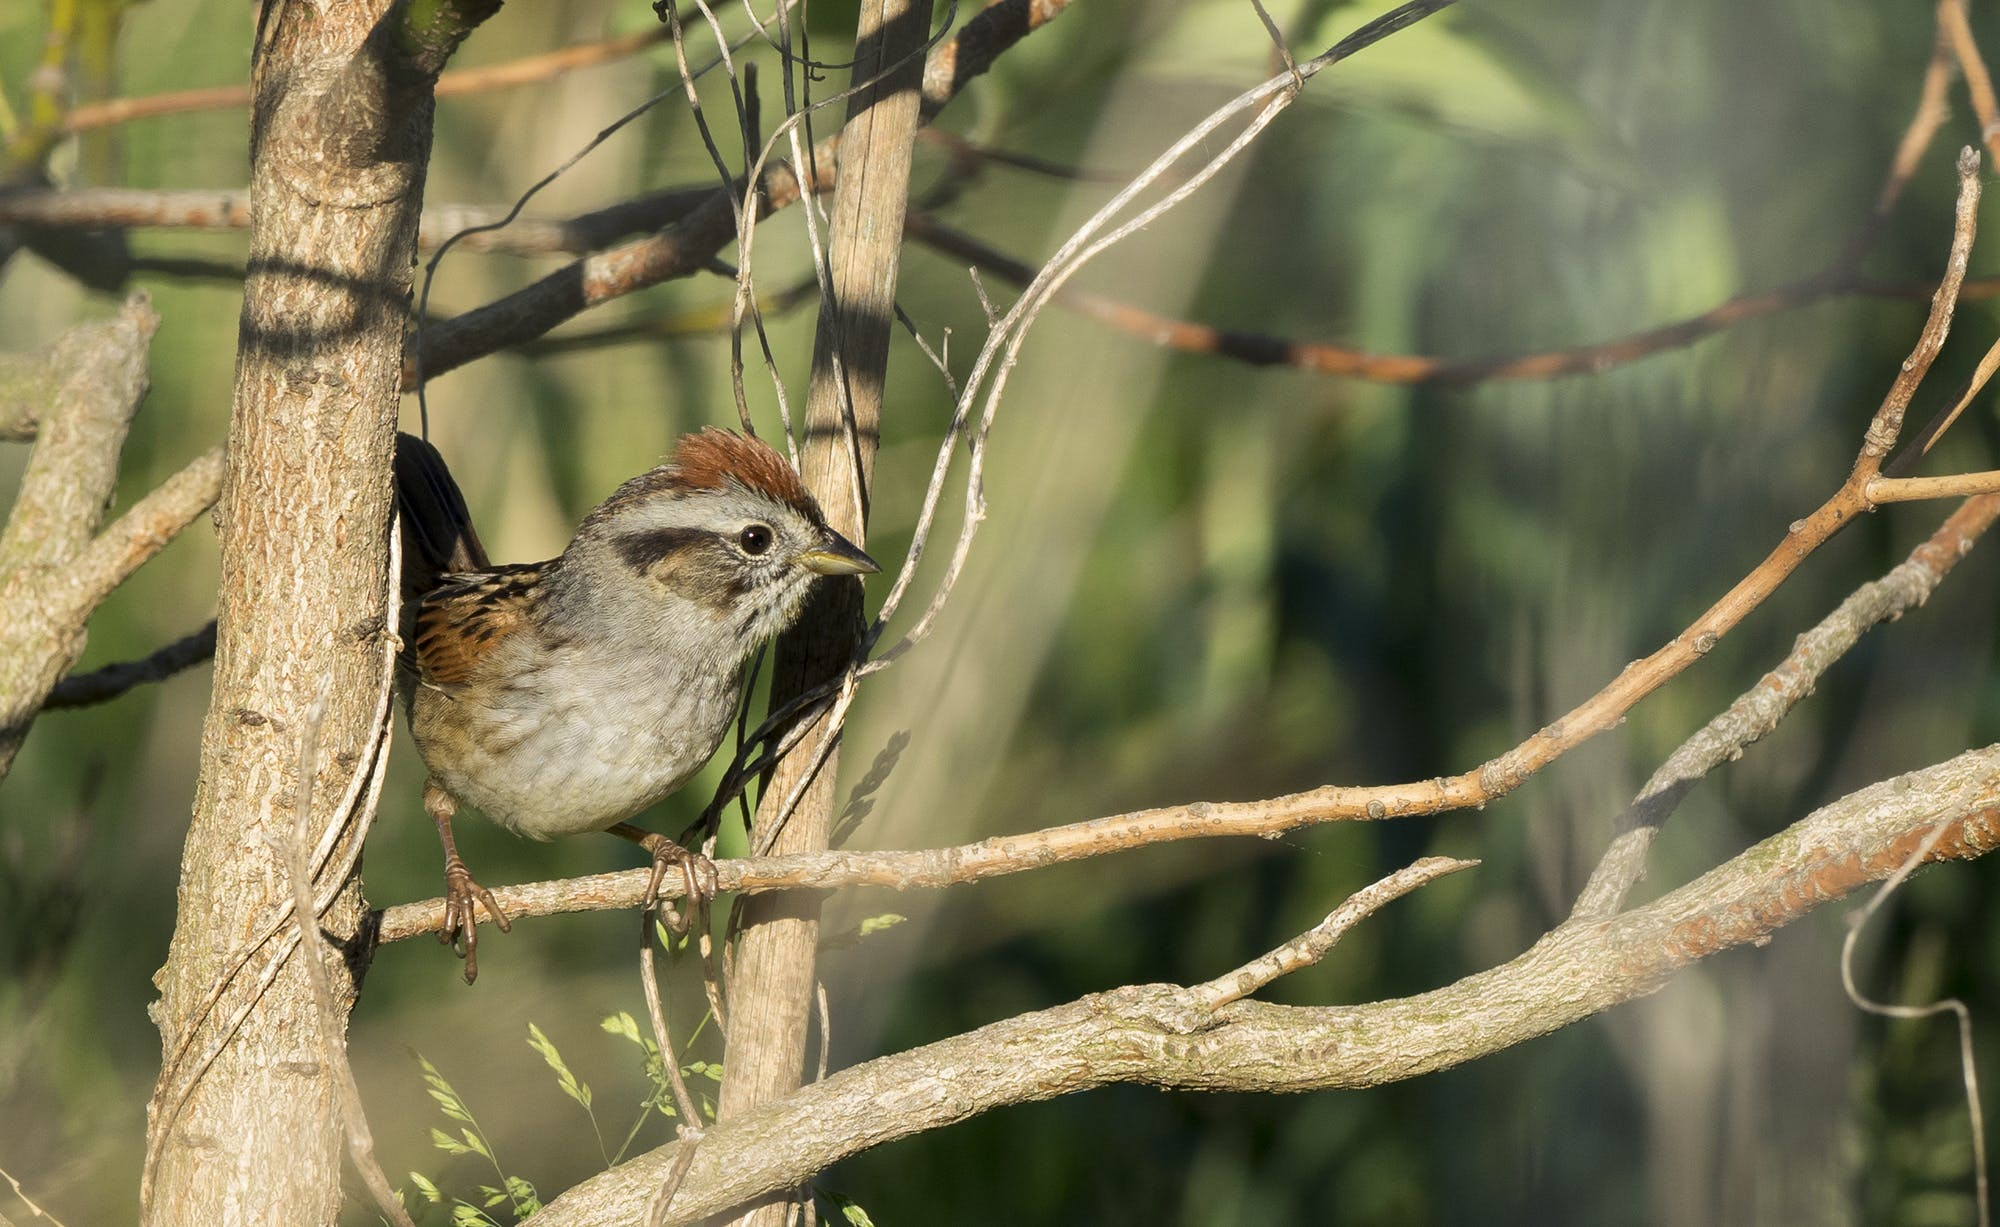 A swamp sparrow sitting on a branch